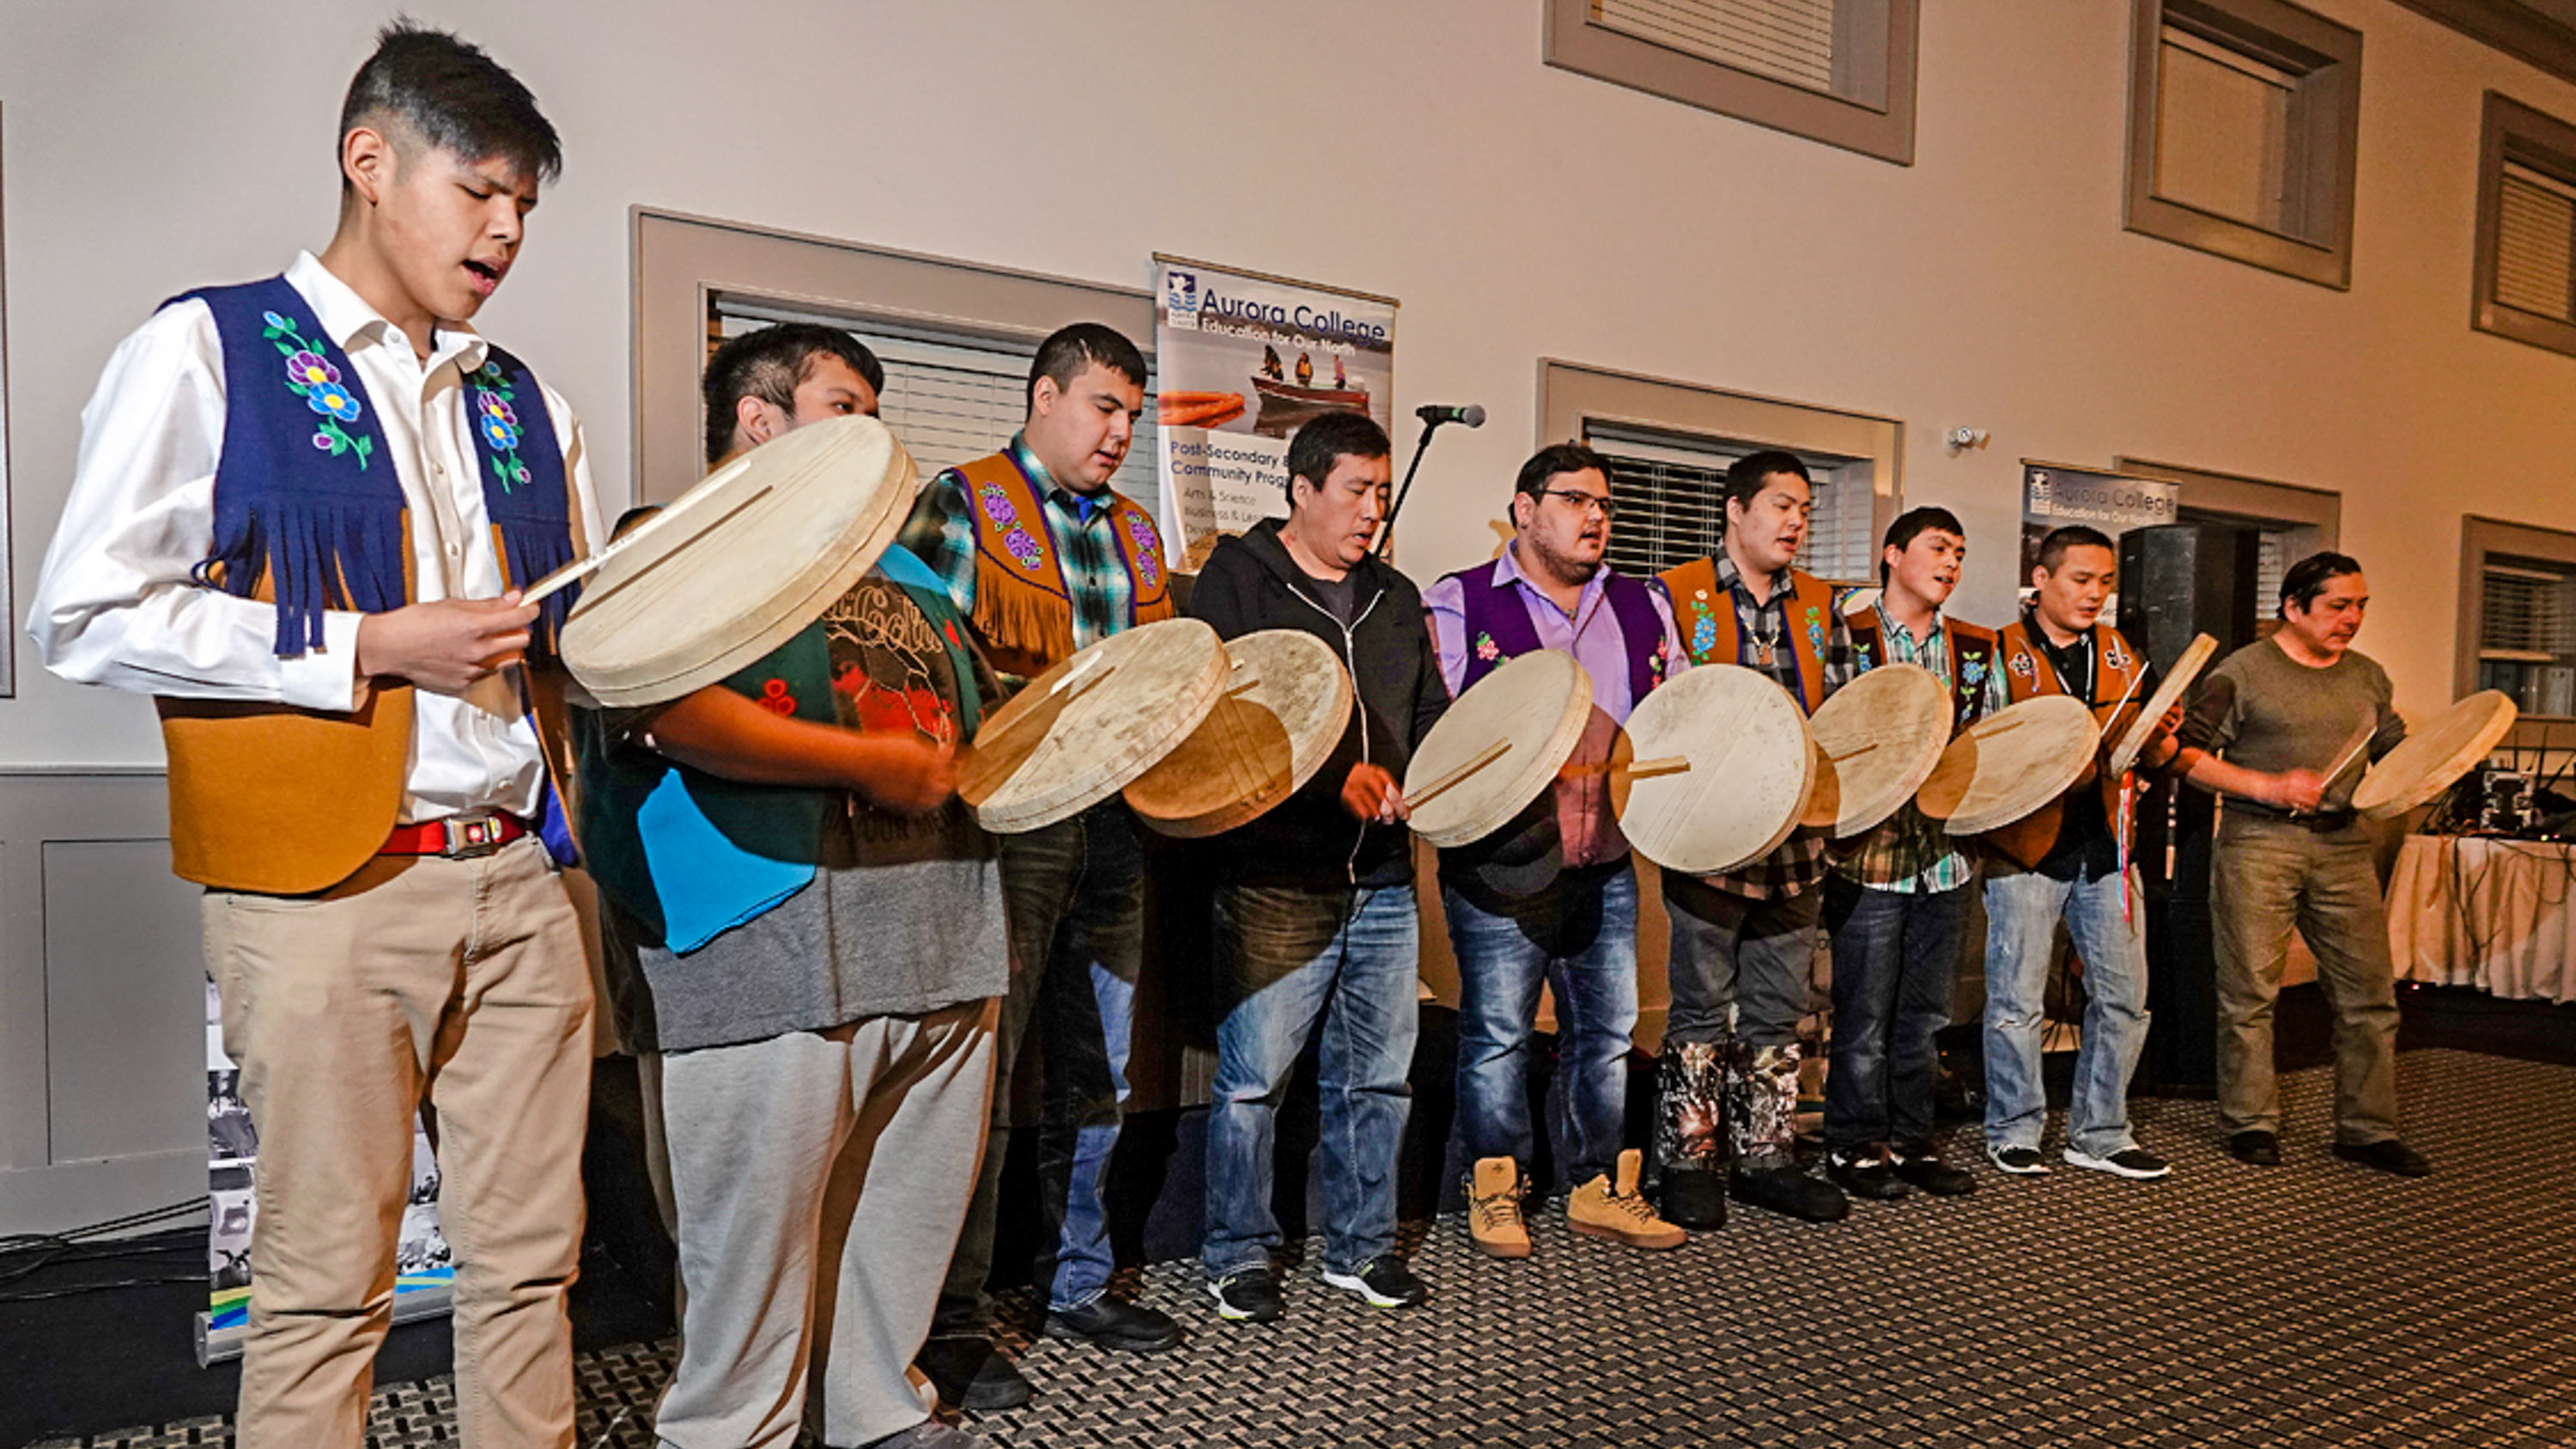 The Yellowknives Dene Drummers perform last week at the college's reunion and celebration.